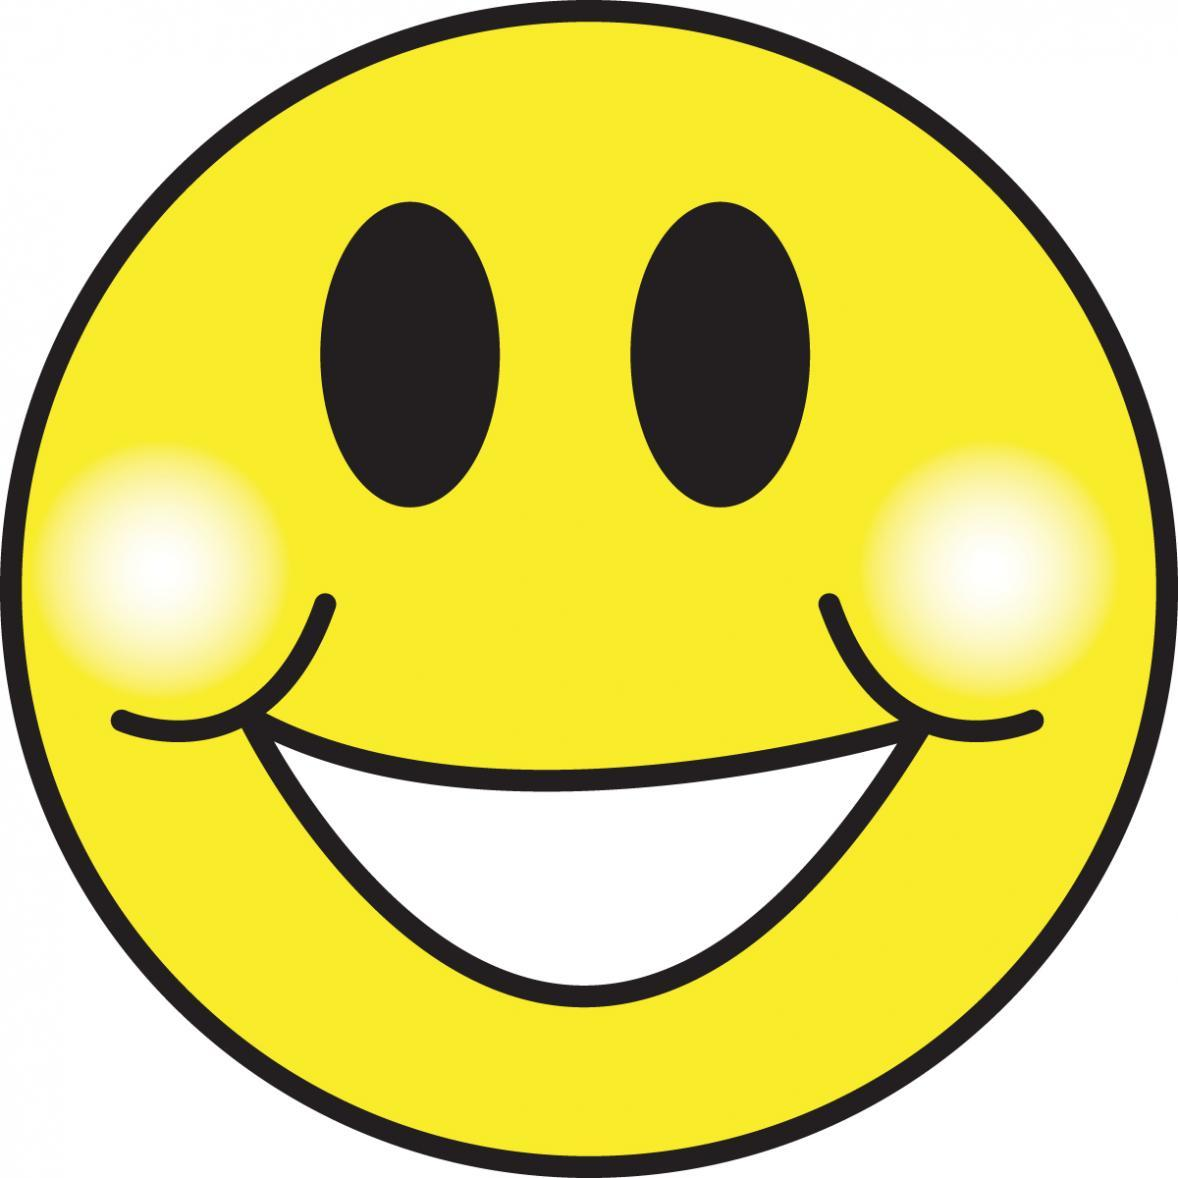 1178x1178 Images Of Smiley Faces With Thumbs Up Allofpicts